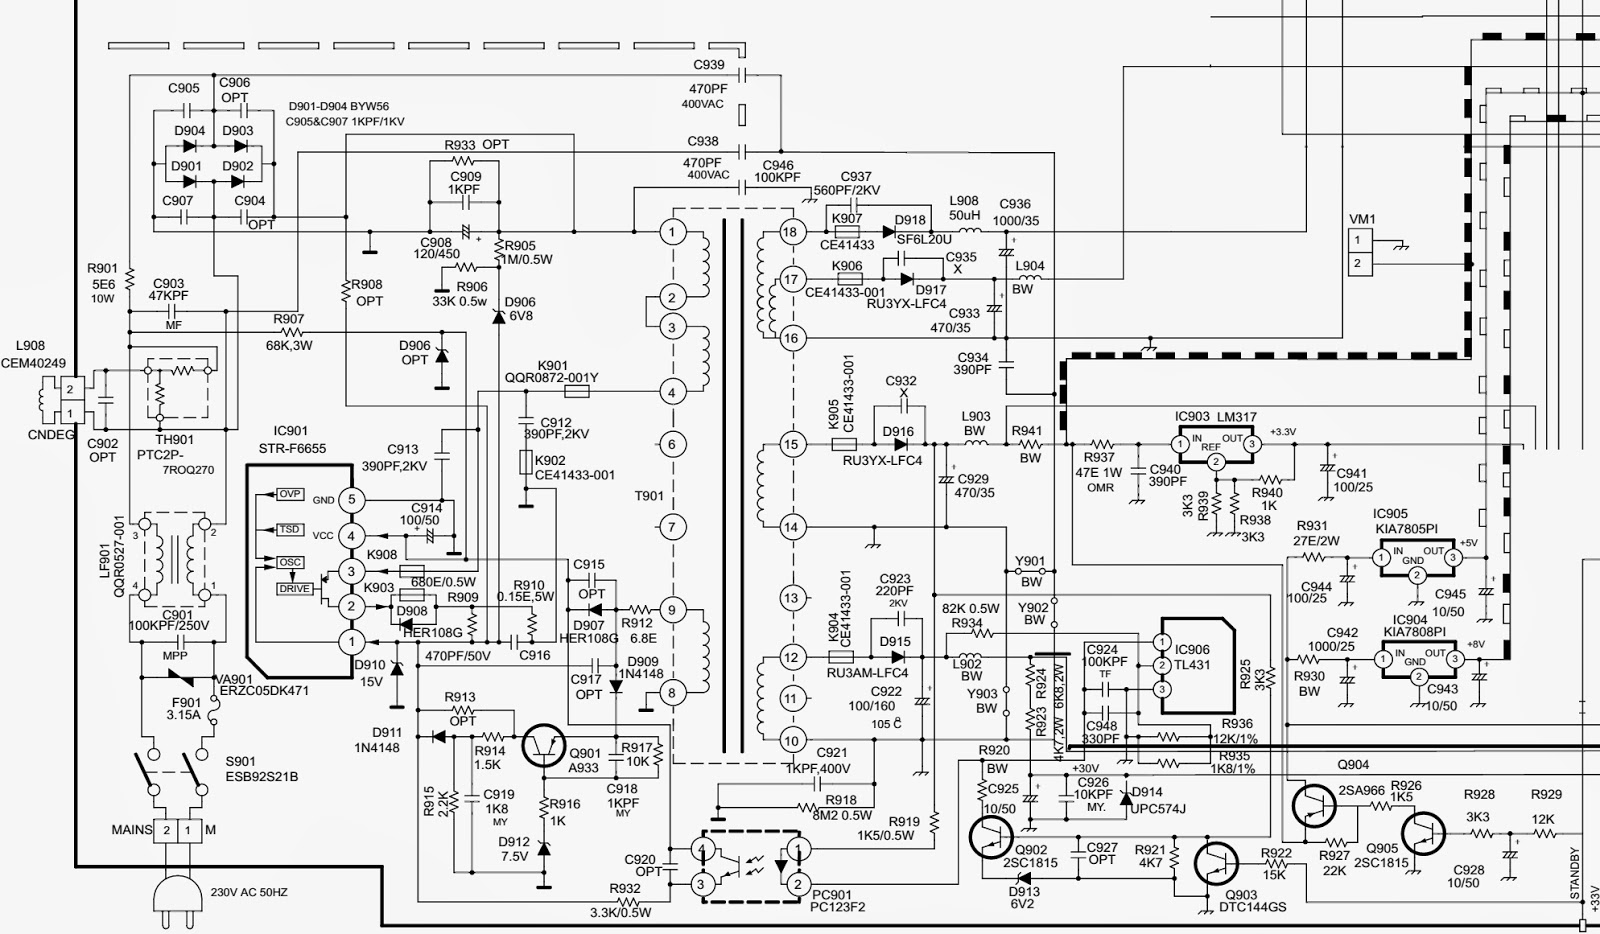 Panasonic Tv Wiring Diagram Just Another Blog 1999 Camry Engine Hookup Diagrams Source Rh 18 8 Ludwiglab De Schematic